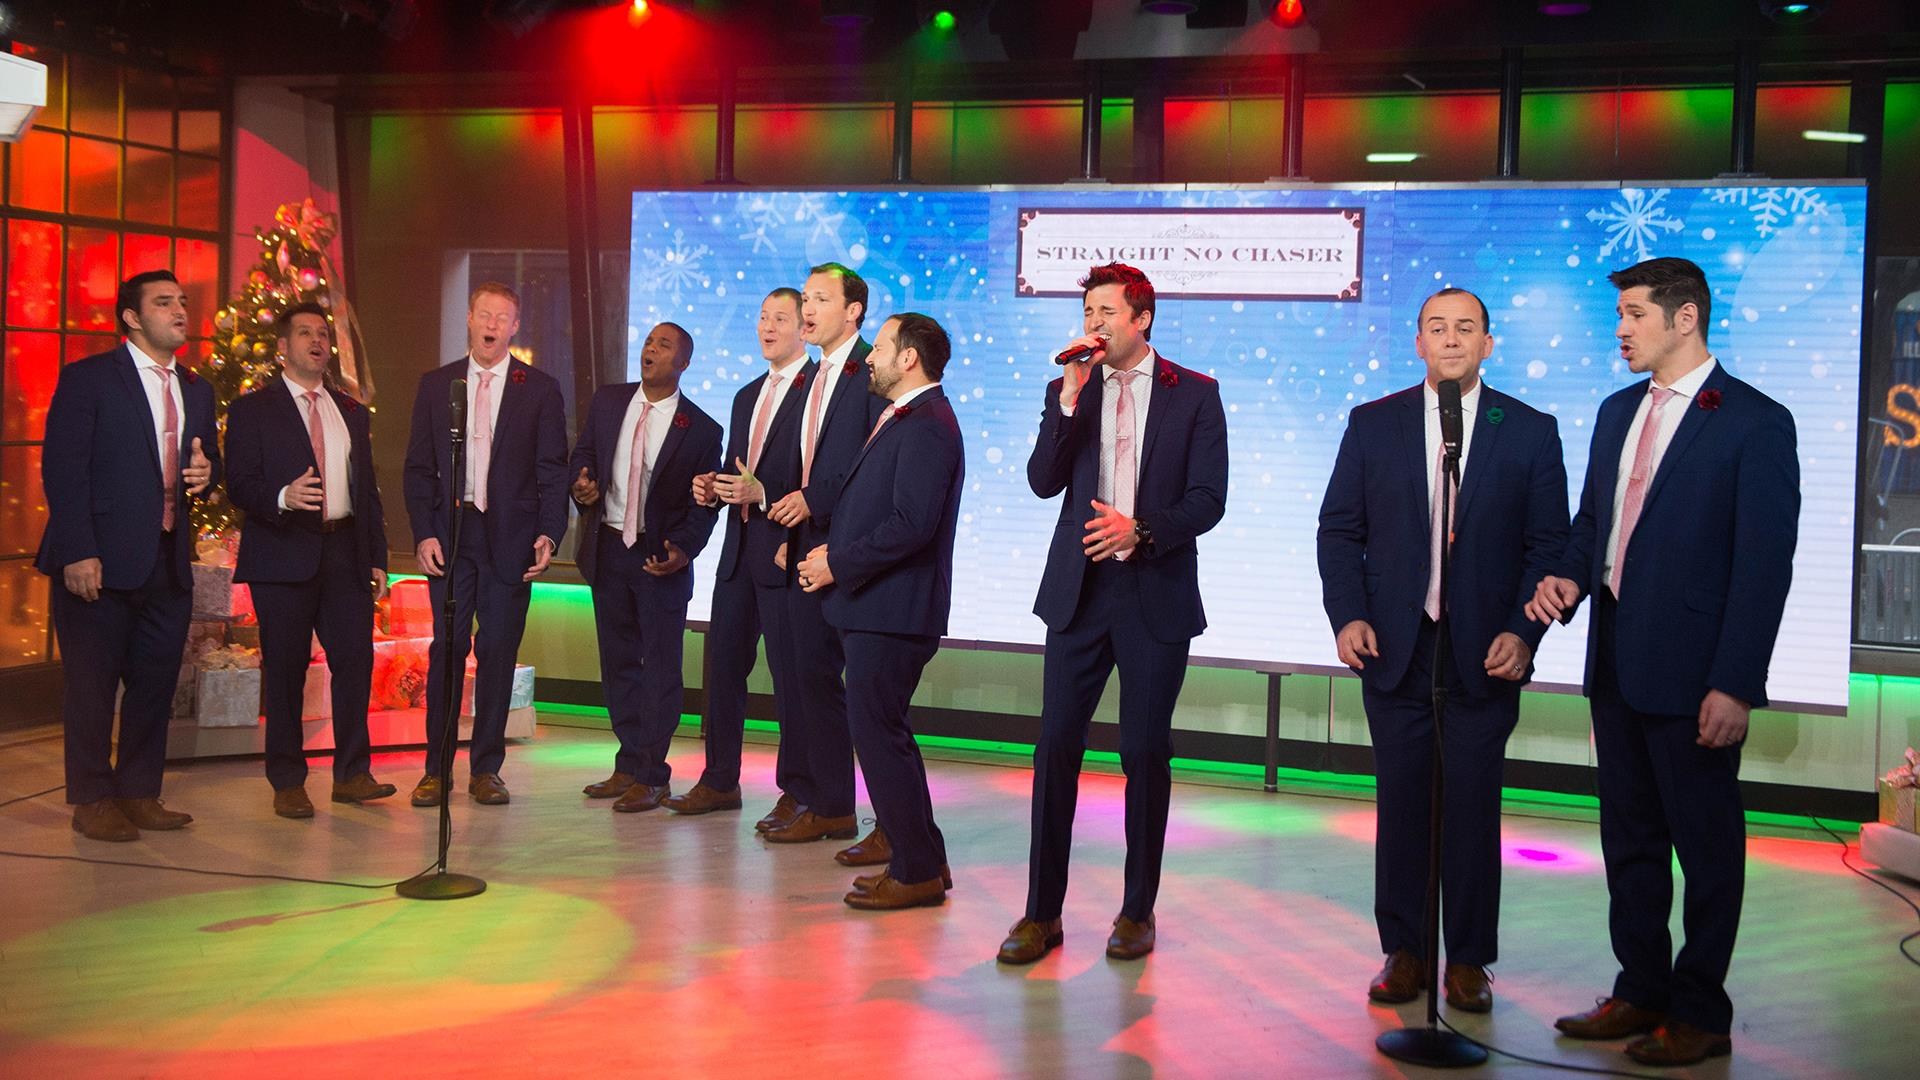 Straight No Chaser debuts adorable \'Feels Like Christmas\' video